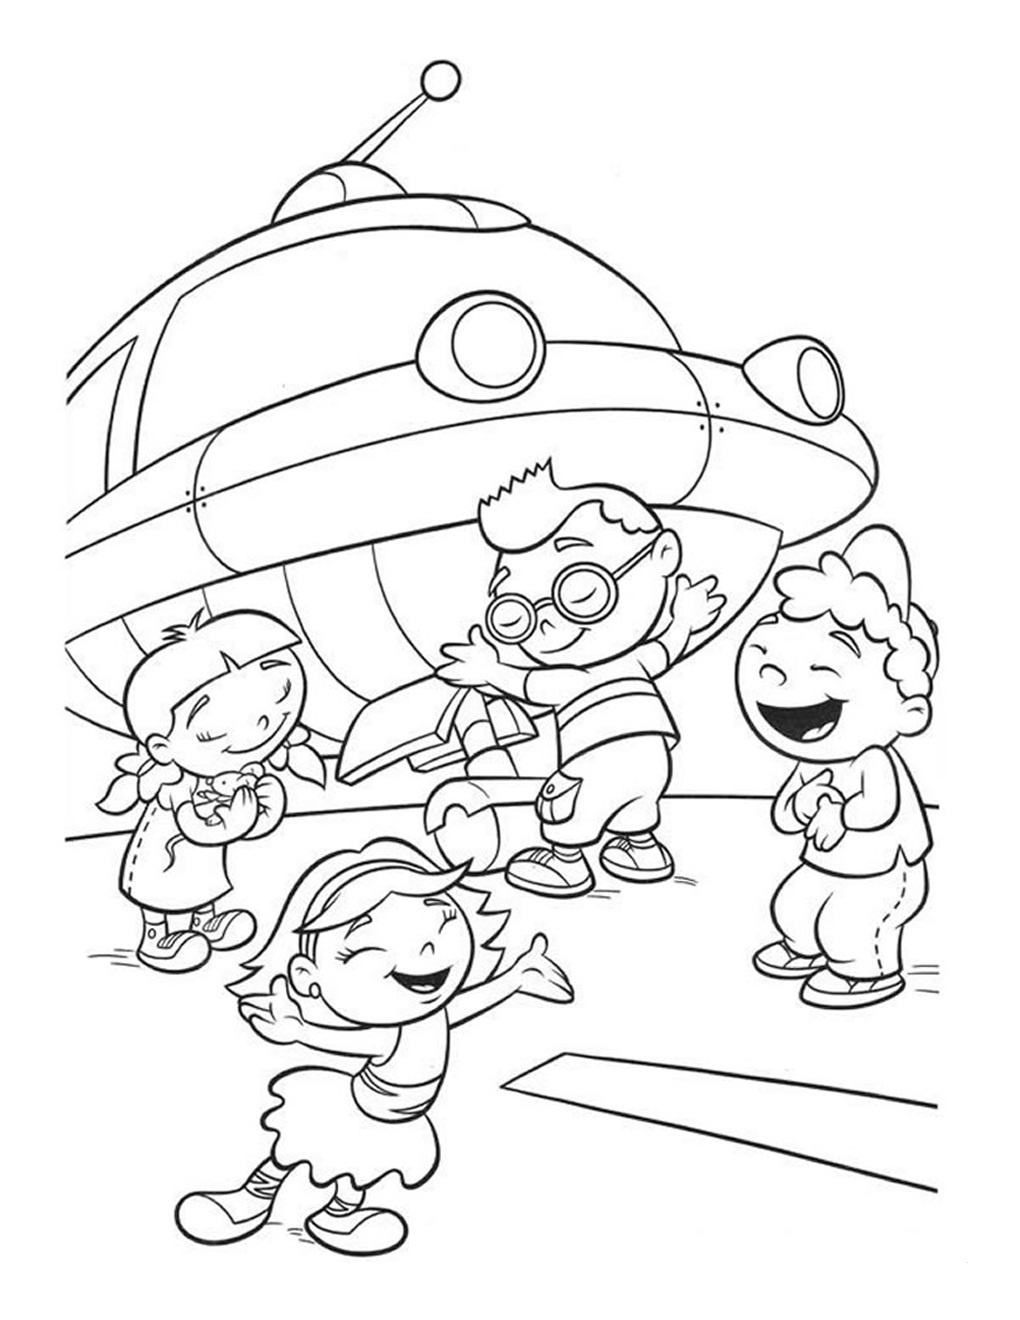 1020x1320 Free Printable Little Einsteins Coloring Pages. Get Ready To Learn!